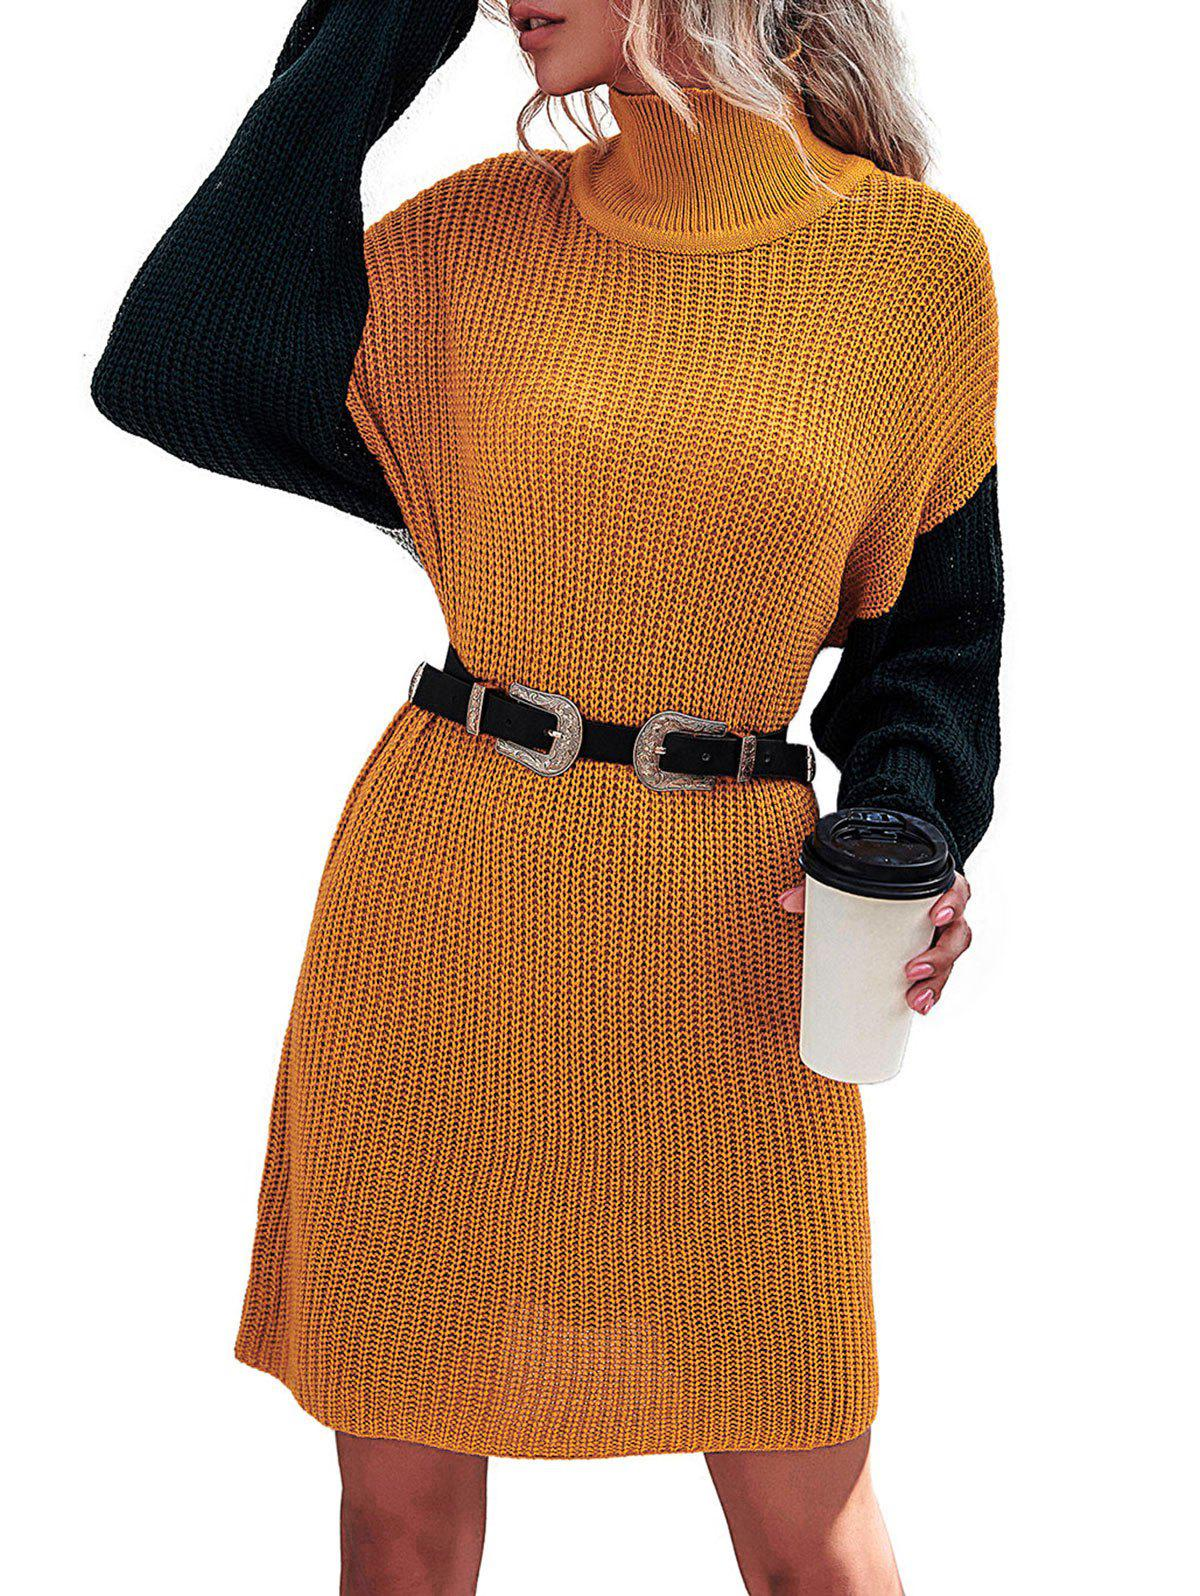 Drop Shoulder Color Blocking High Neck Sweater Dress - multicolor L